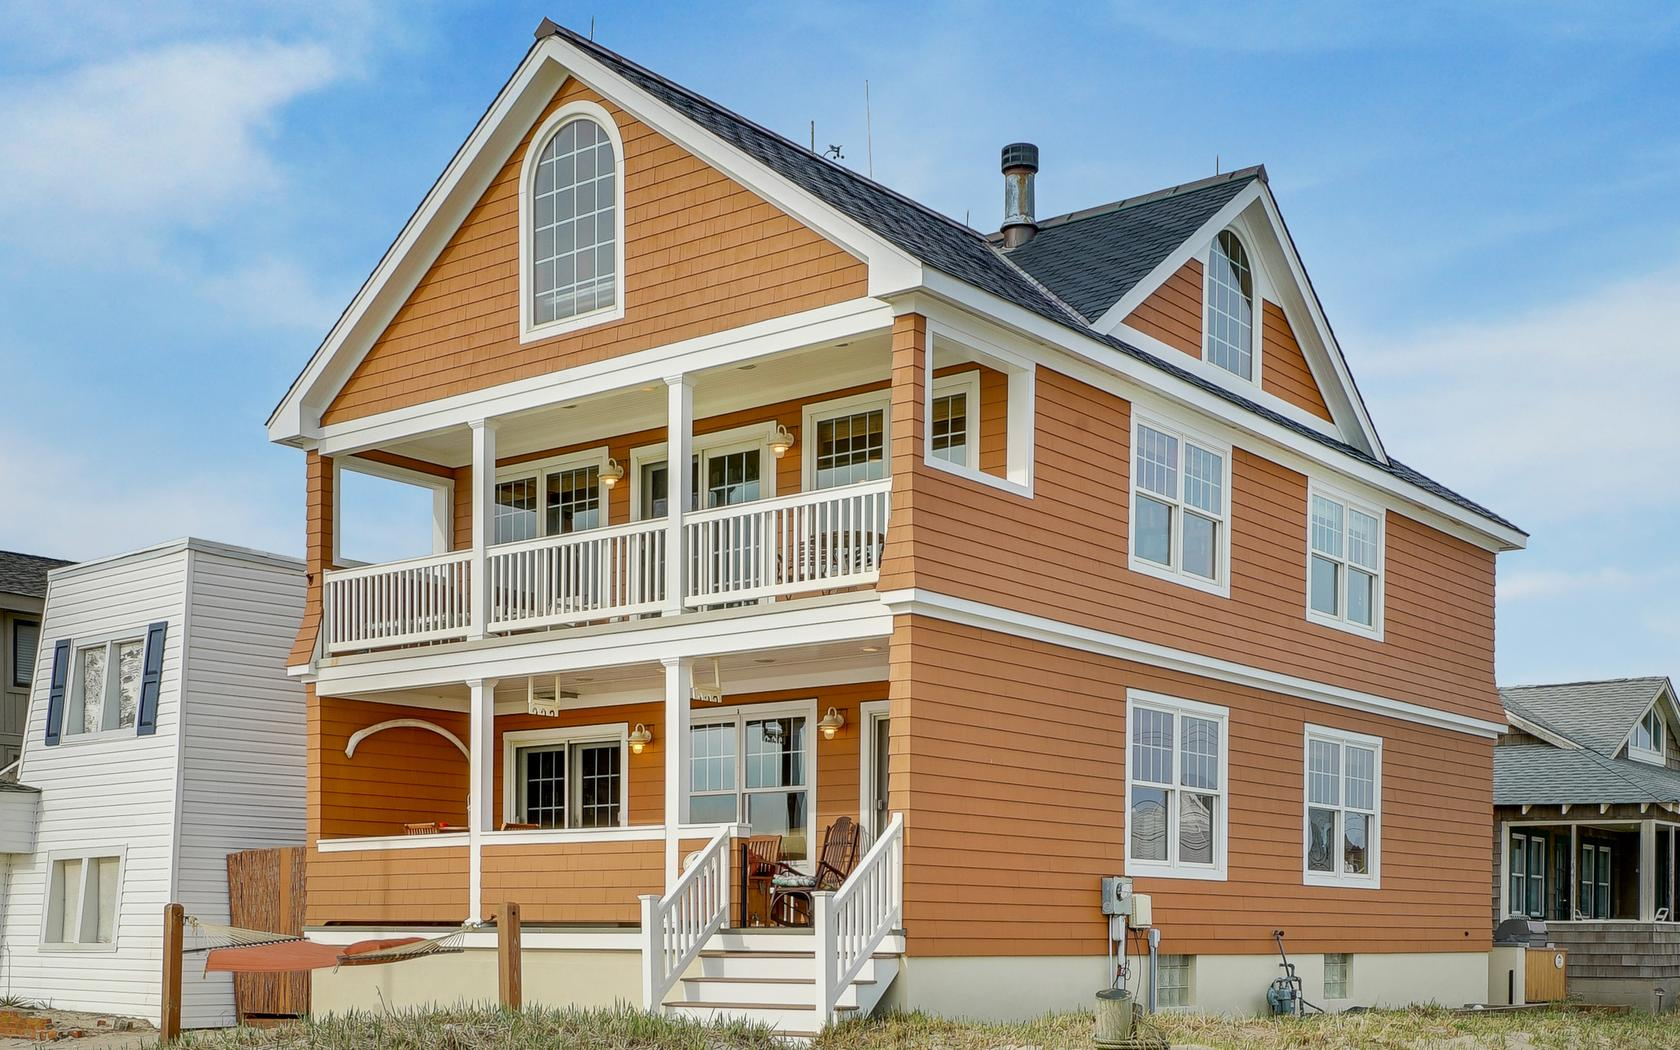 Casa Unifamiliar por un Venta en Custom Built Beachfront Home 145 Beachfront Manasquan, Nueva Jersey, 08736 Estados Unidos